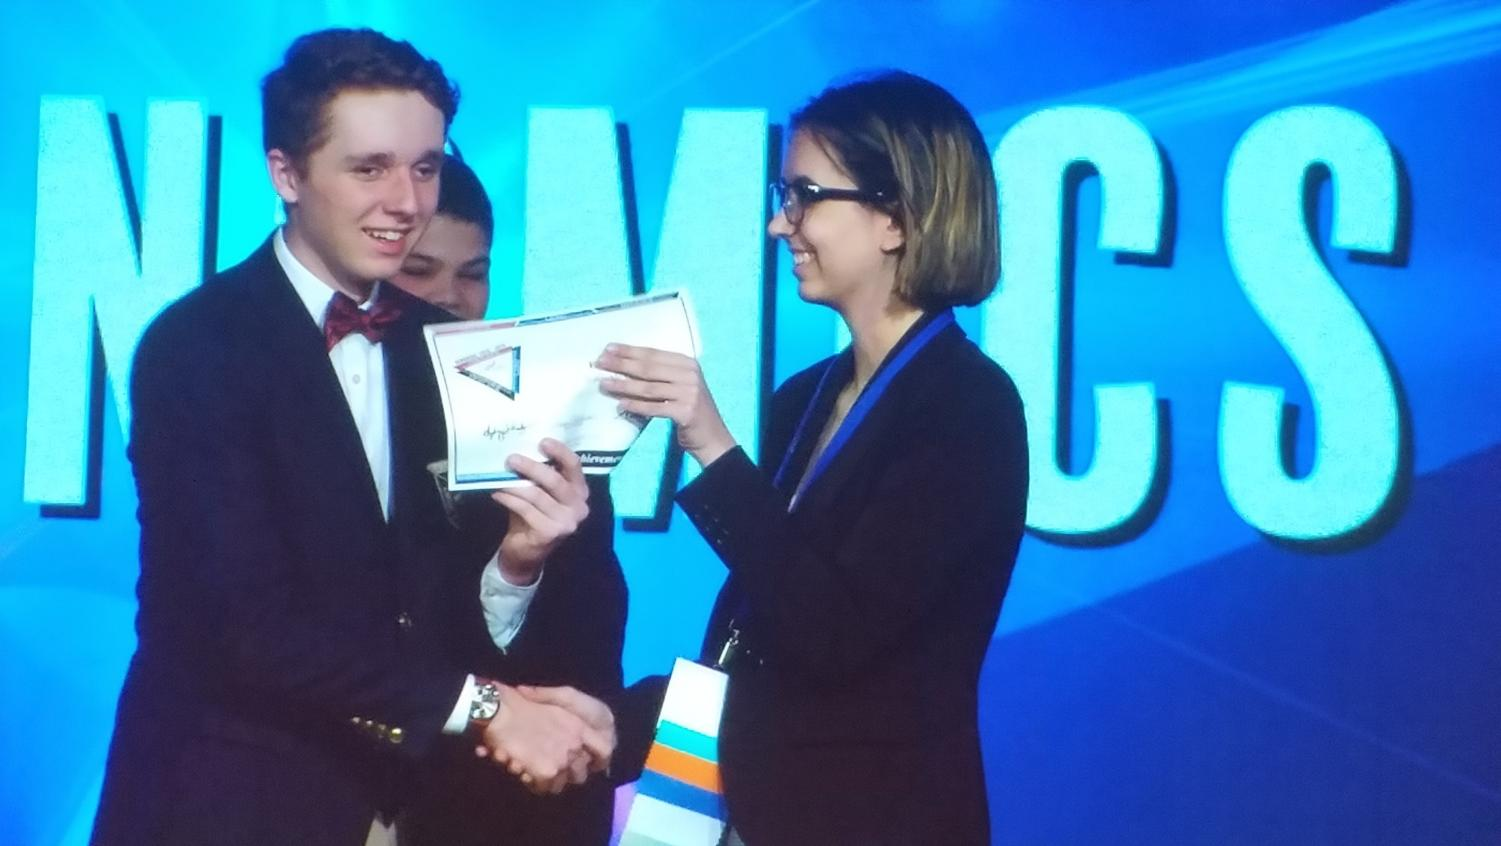 Senior Chloe Andreini receives a honorable mention certificate during the FBLA State Leadership Conference Awards Ceremony on April 16th, 2019.  Andreini received her certificate in Economics and will compete at nationals in June in San Antonio, Texas.  Photo courtesy of Bonnie Anderson